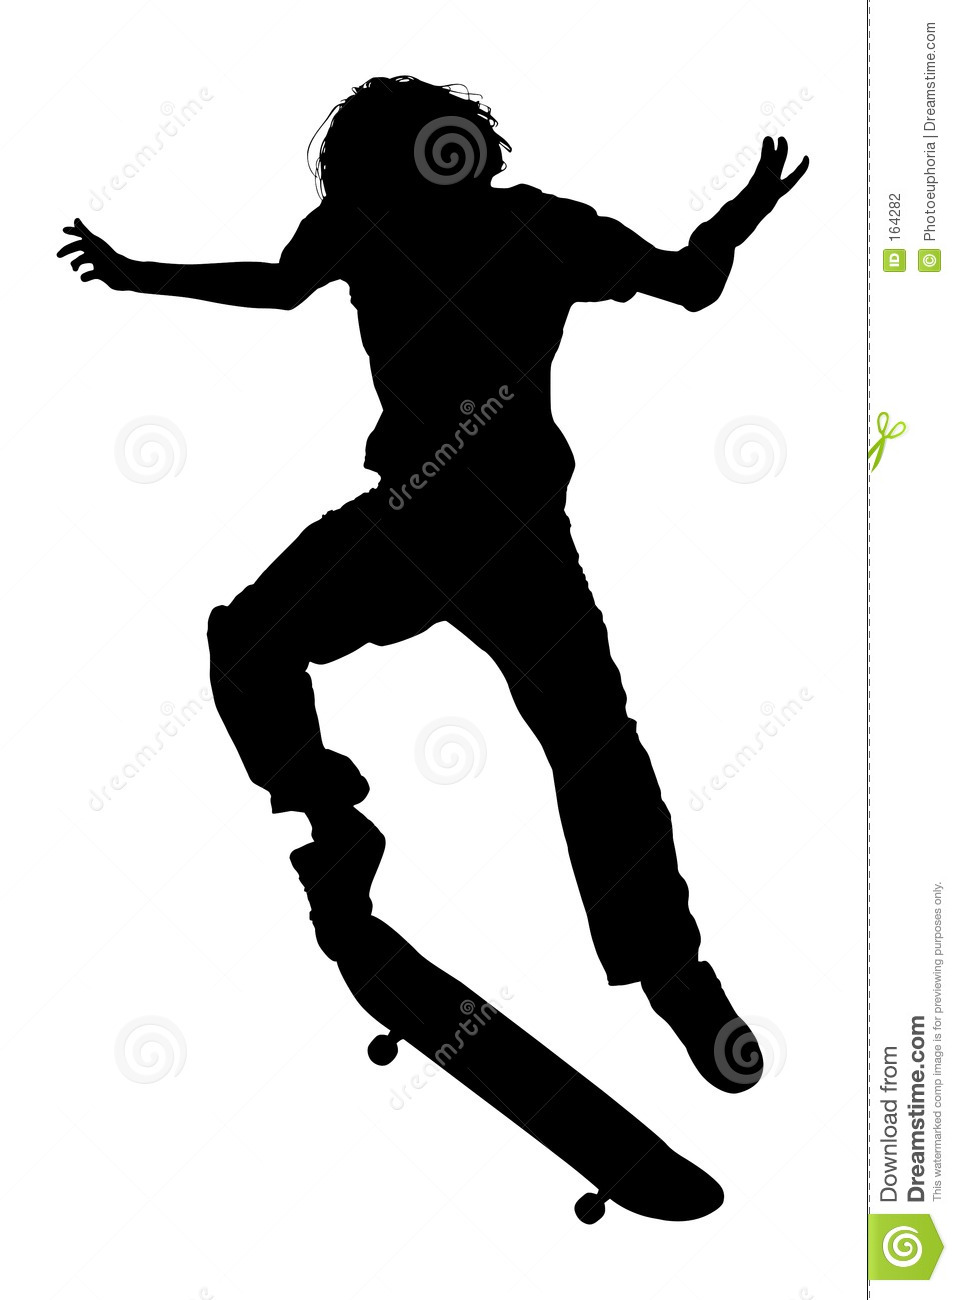 silhouette with clipping path of teen boy on skateboard